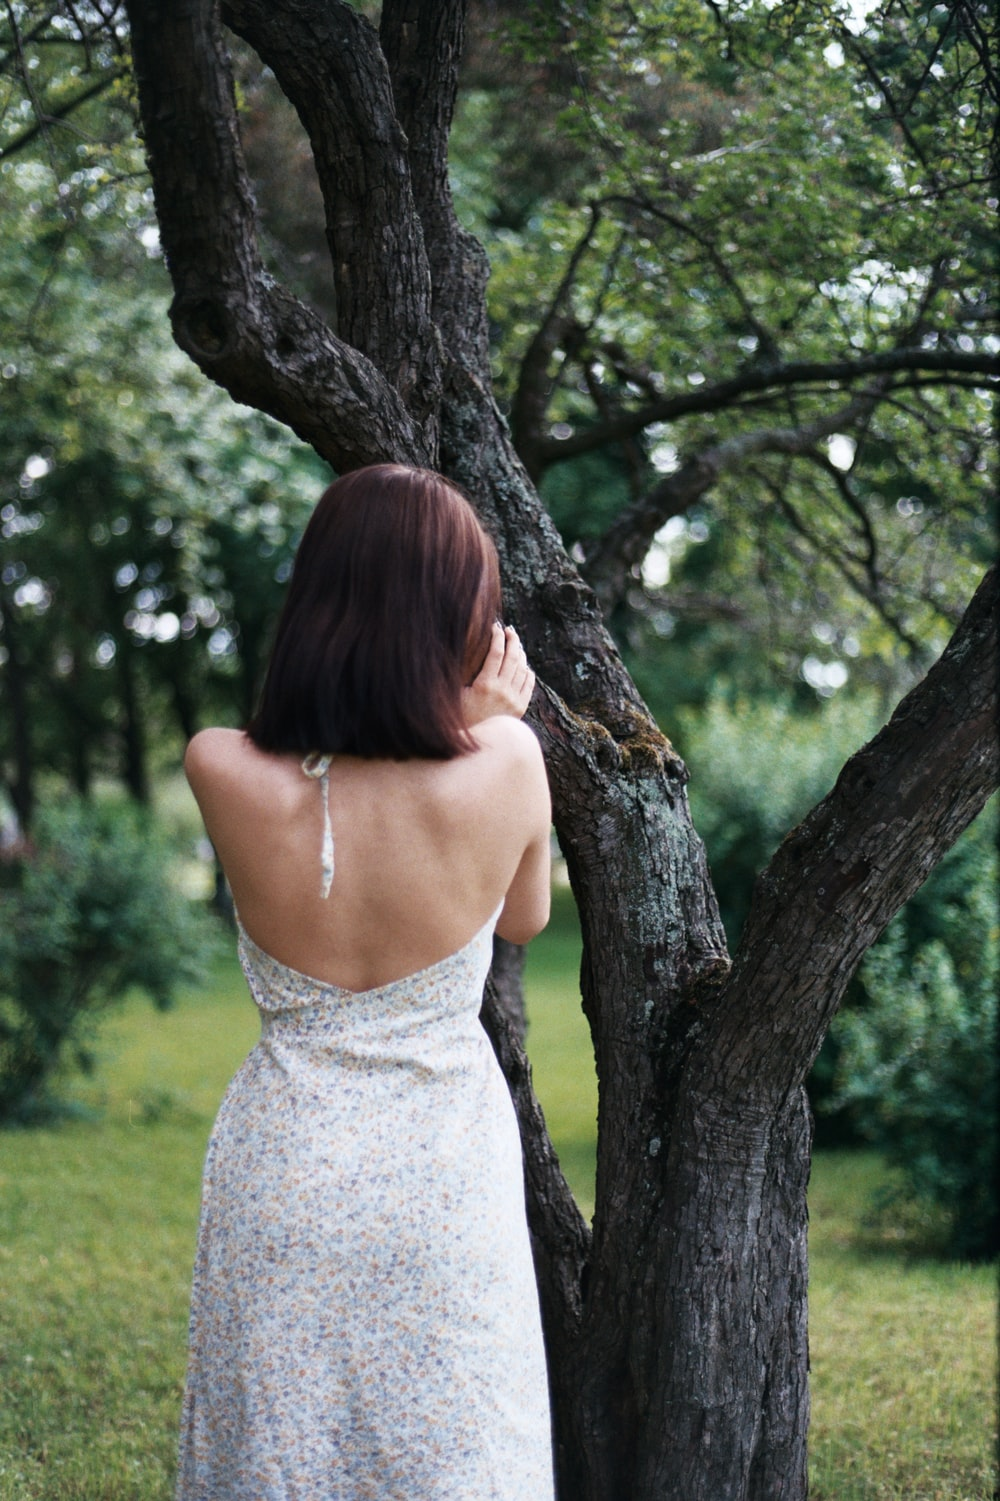 woman in white halter dress looking at tree